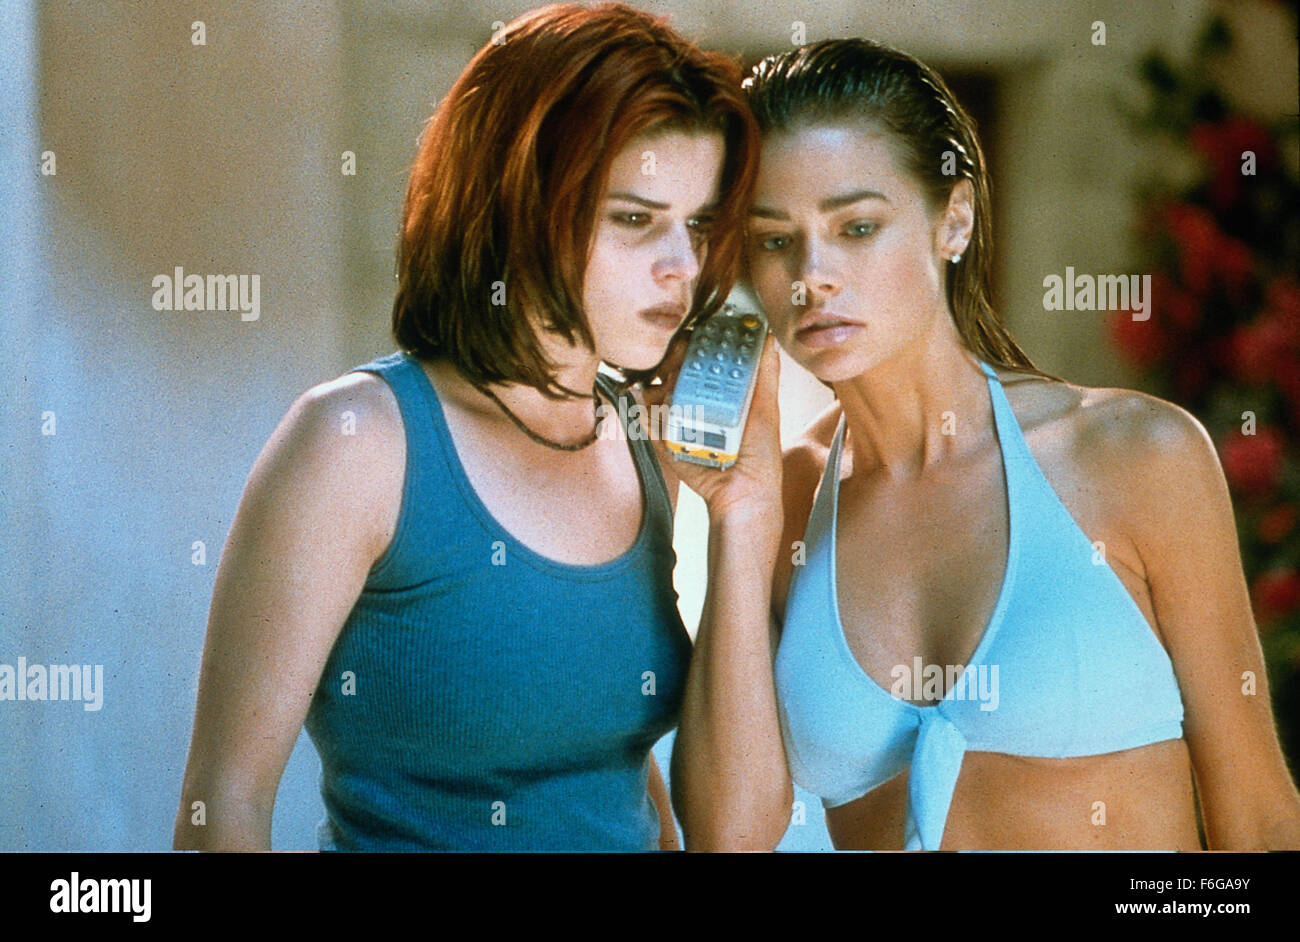 Mar 20, 1998; Los Angeles, CA, USA; (L-R): Actress NEVE CAMPELL is Suzie Marie Toller and actress DENISE RICHARDS - Stock Image